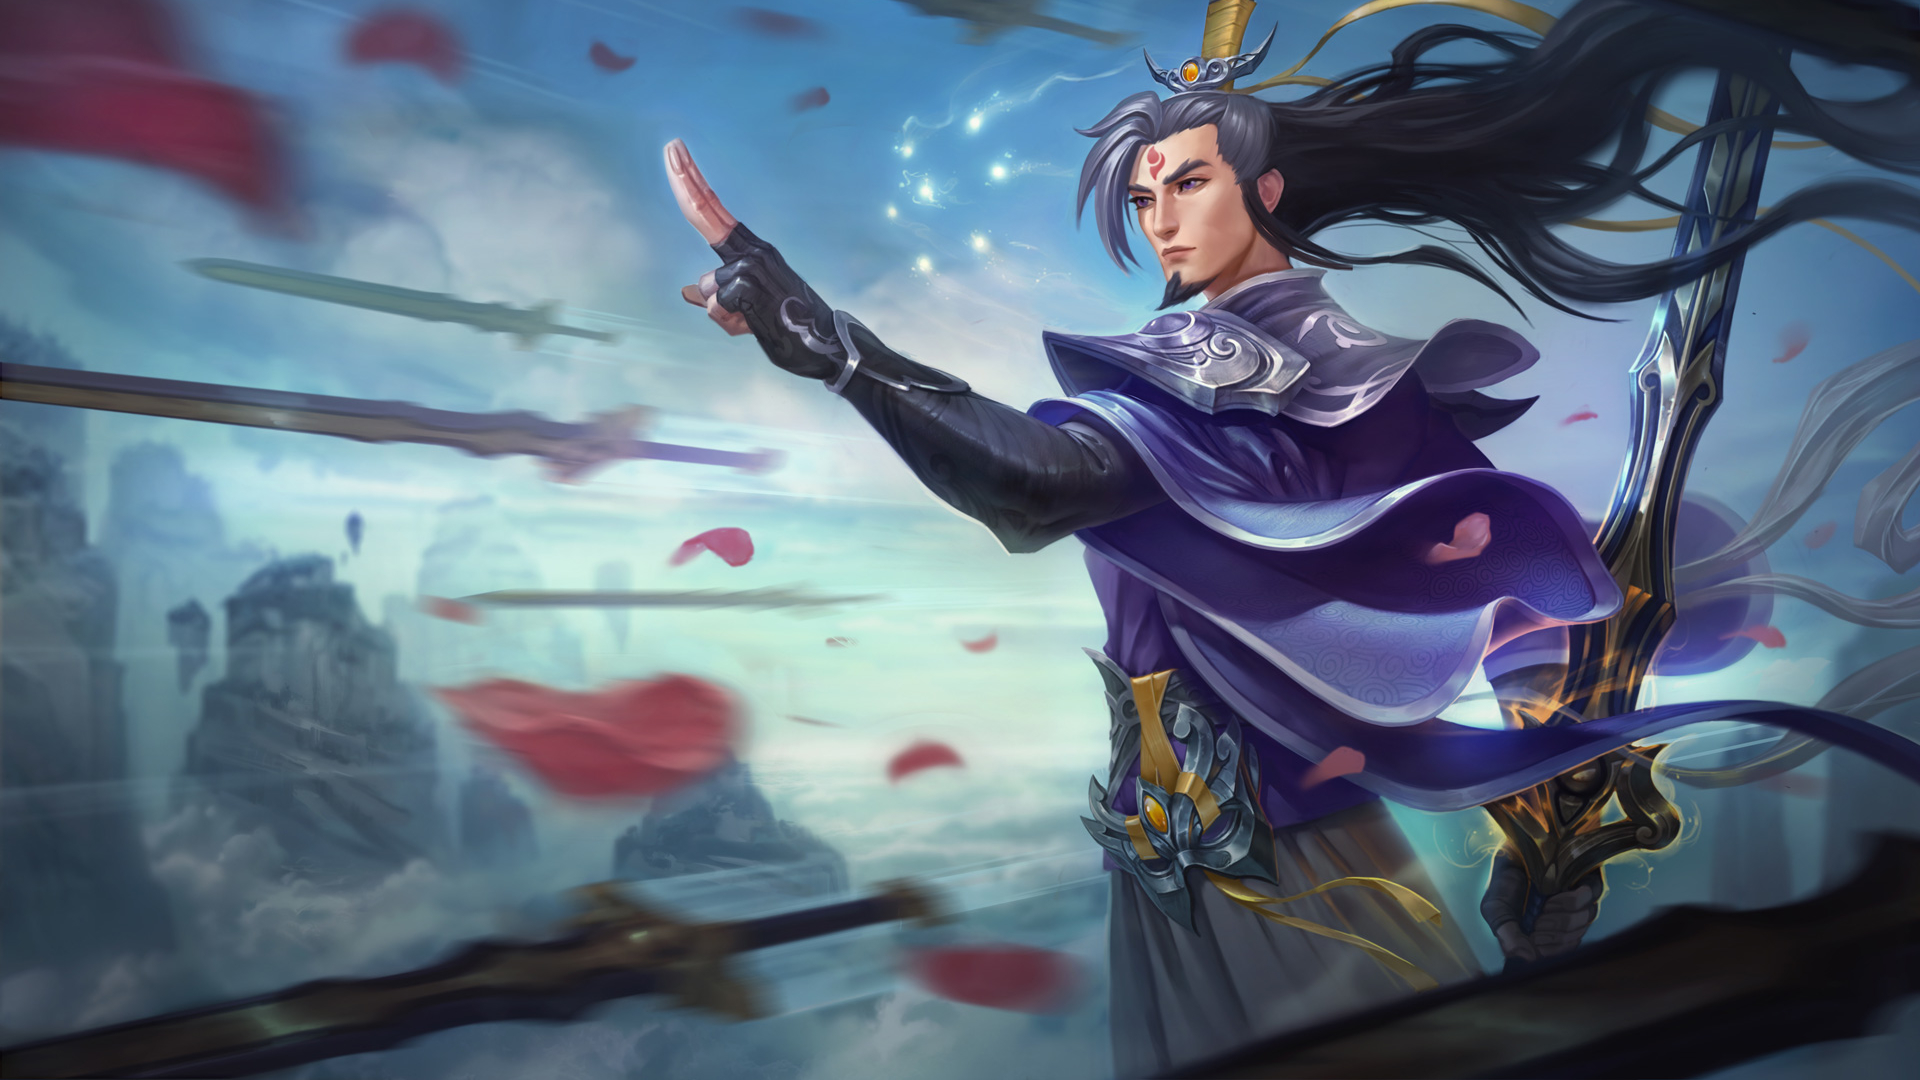 1920x1080 Master Yi League Of Legends 1080p Laptop Full Hd Wallpaper Hd Games 4k Wallpapers Images Photos And Background